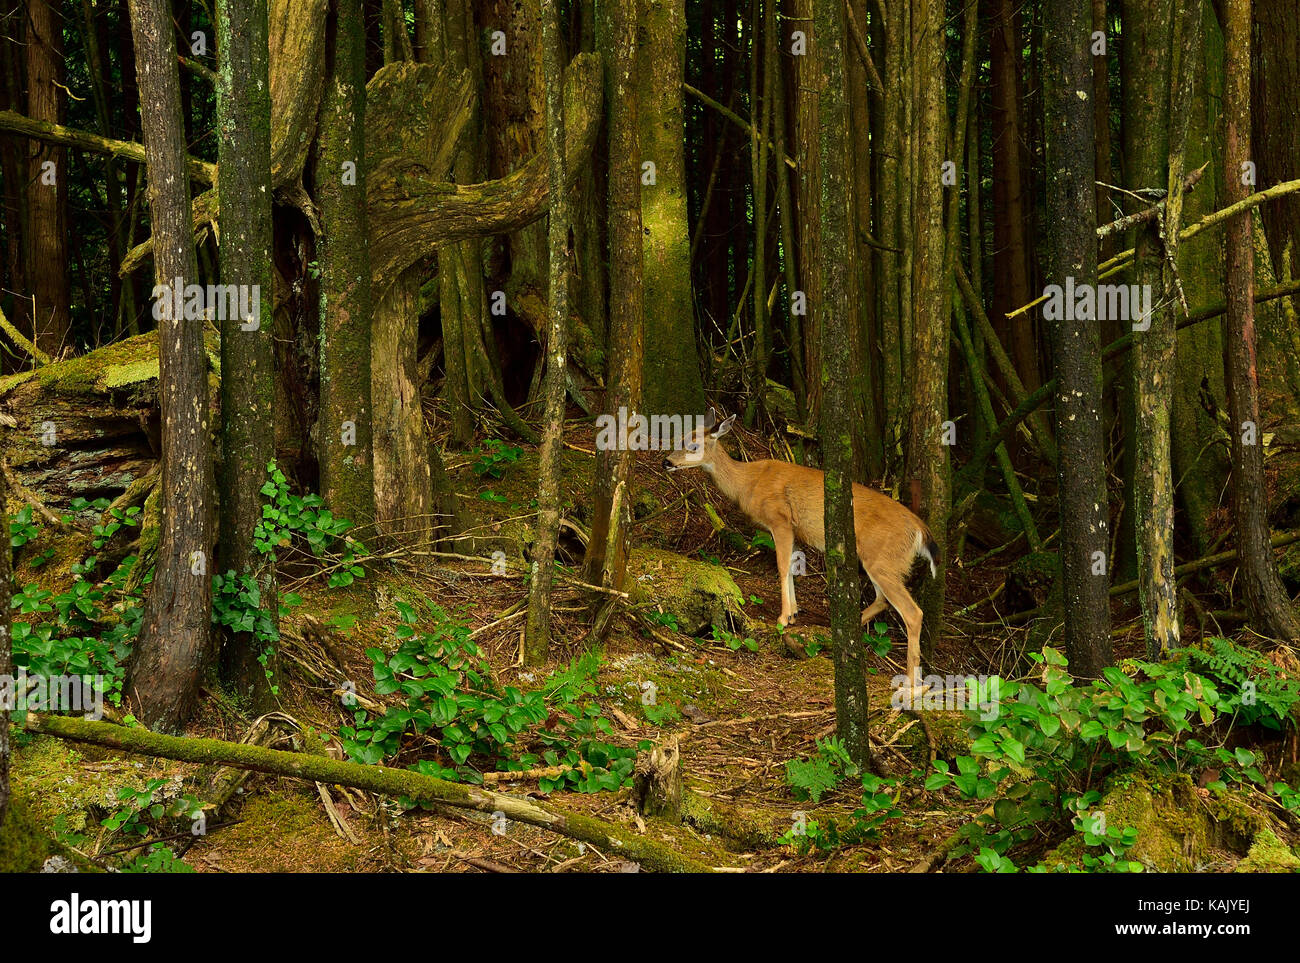 A female Columbian Black-tailed deer (Odocoileus hemionus columbianus),  in its home invironment on the west coast - Stock Image